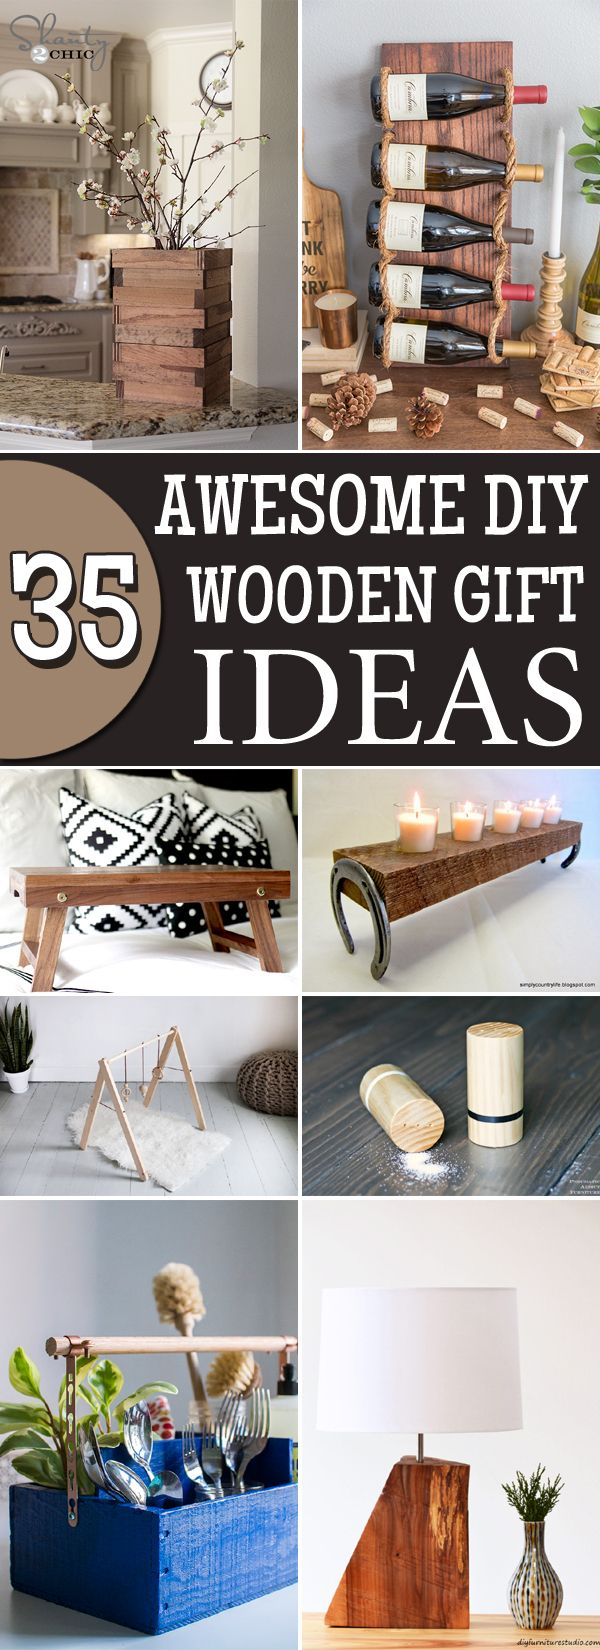 35 Awesome DIY Wooden Gift Ideas That Everyone Will Love